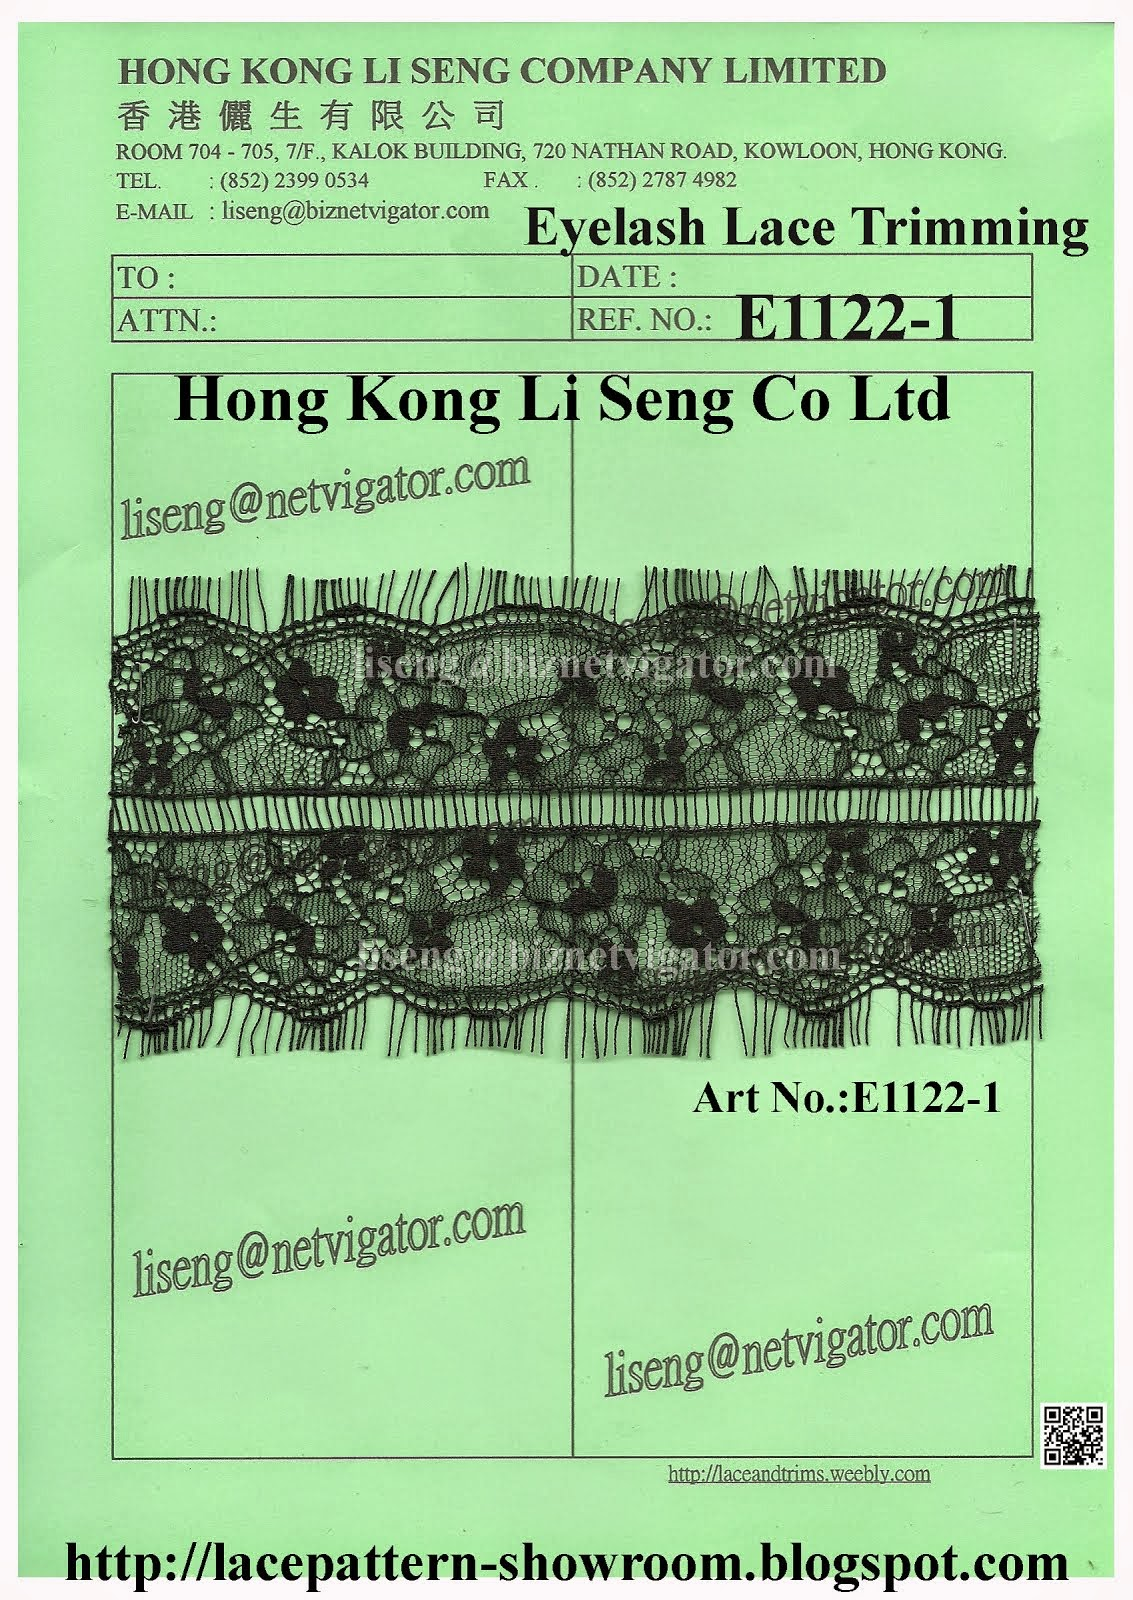 New Eyelash Lace Trimming Manufacturer Wholesale and Supplier - Hong Kong Li Seng Co Ltd